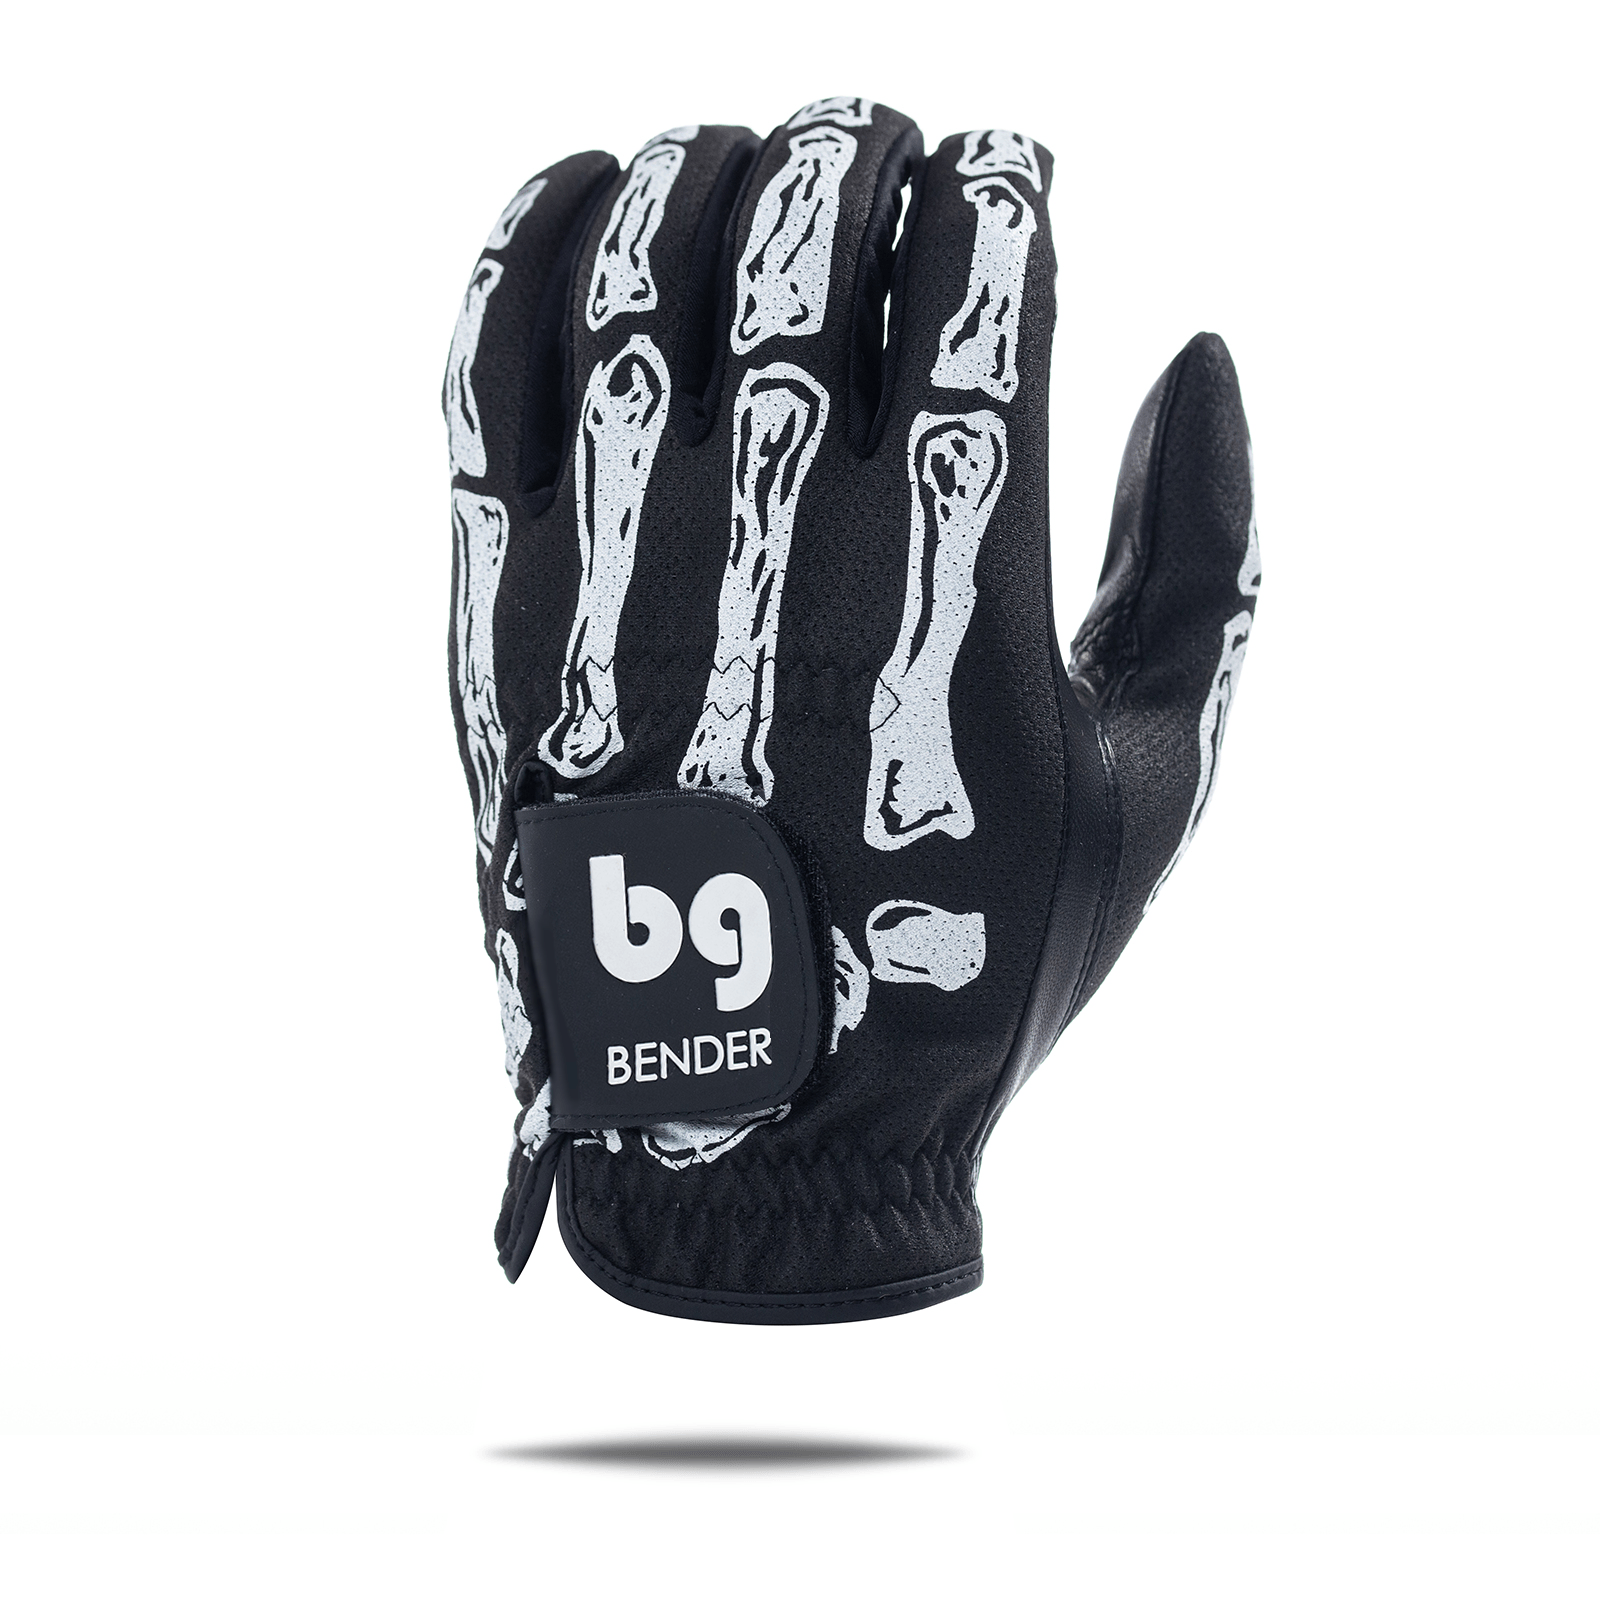 Black Bones Mesh Skeleton Golf Glove